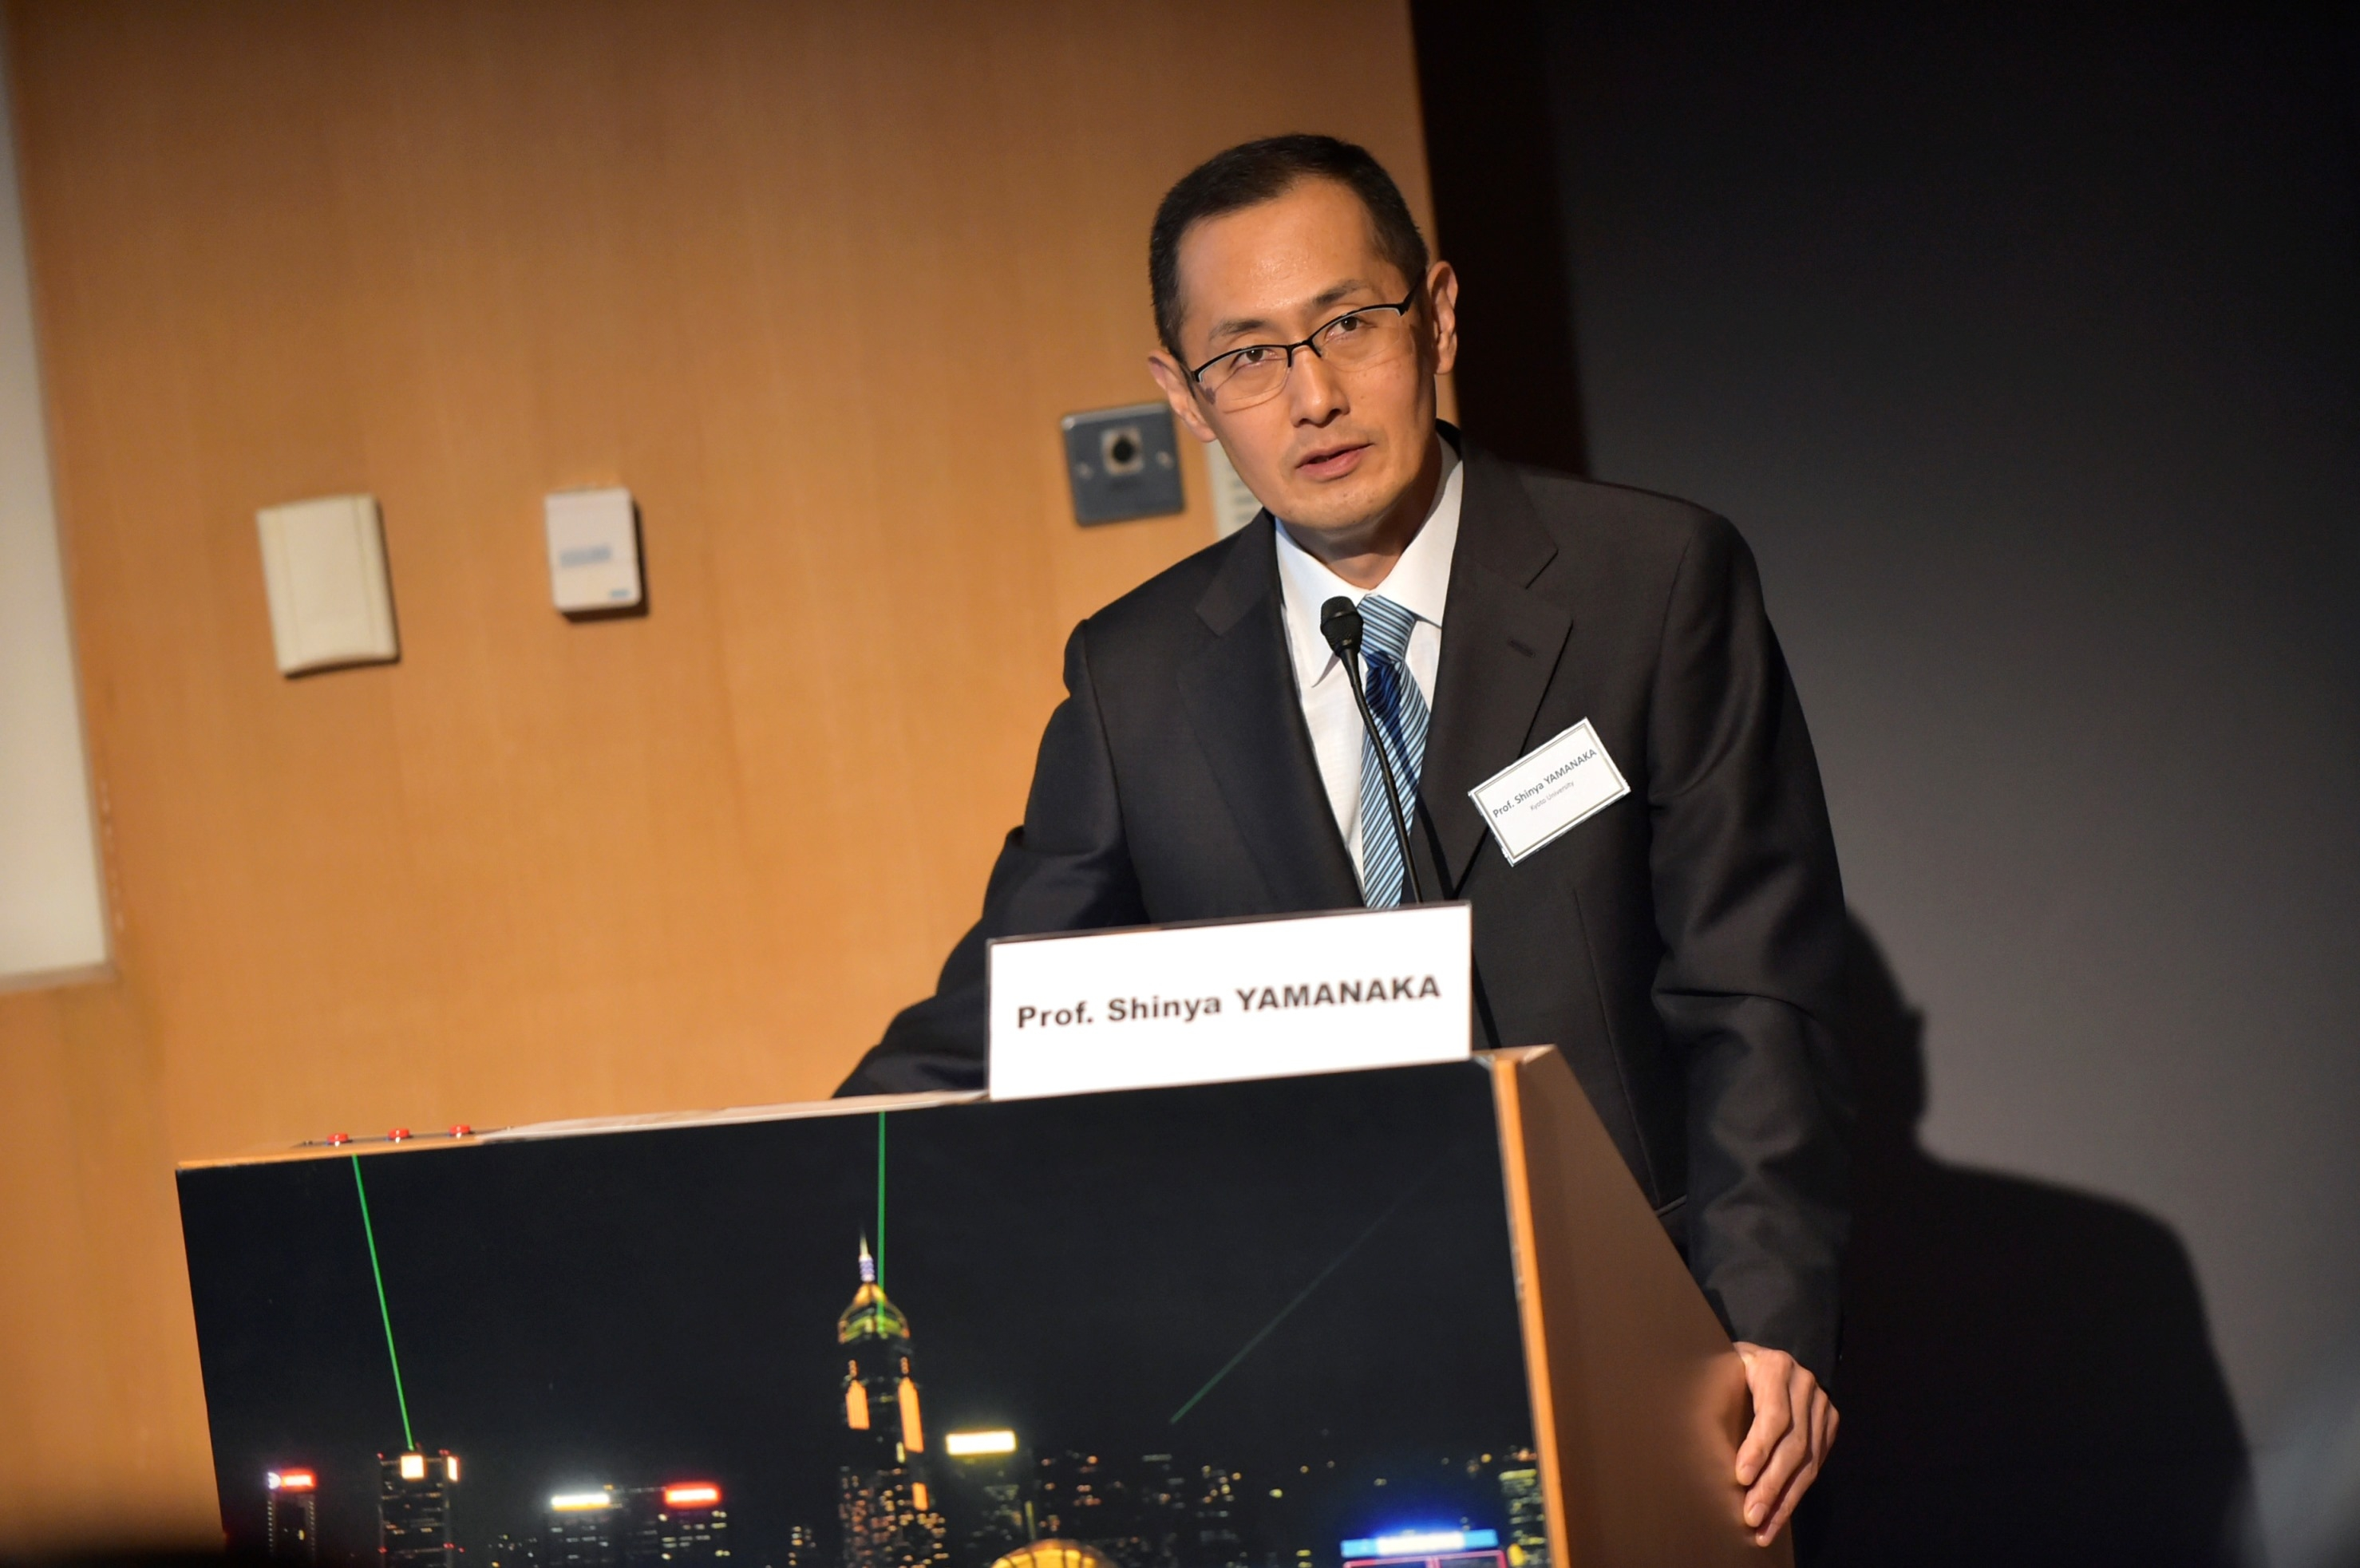 Prof. Shinya Yamanaka, Nobel Laureate in Physiology or Medicine 2012, Shaw Laureate in Life Science and Medicine 2008, and Director of the Center for iPS Cell Research and Application in Kyoto University, has been invited to be Dr. Lui Che Woo Distinguished Professor and deliver a public lecture on 'New Era of Medicine with iPS Cells'.